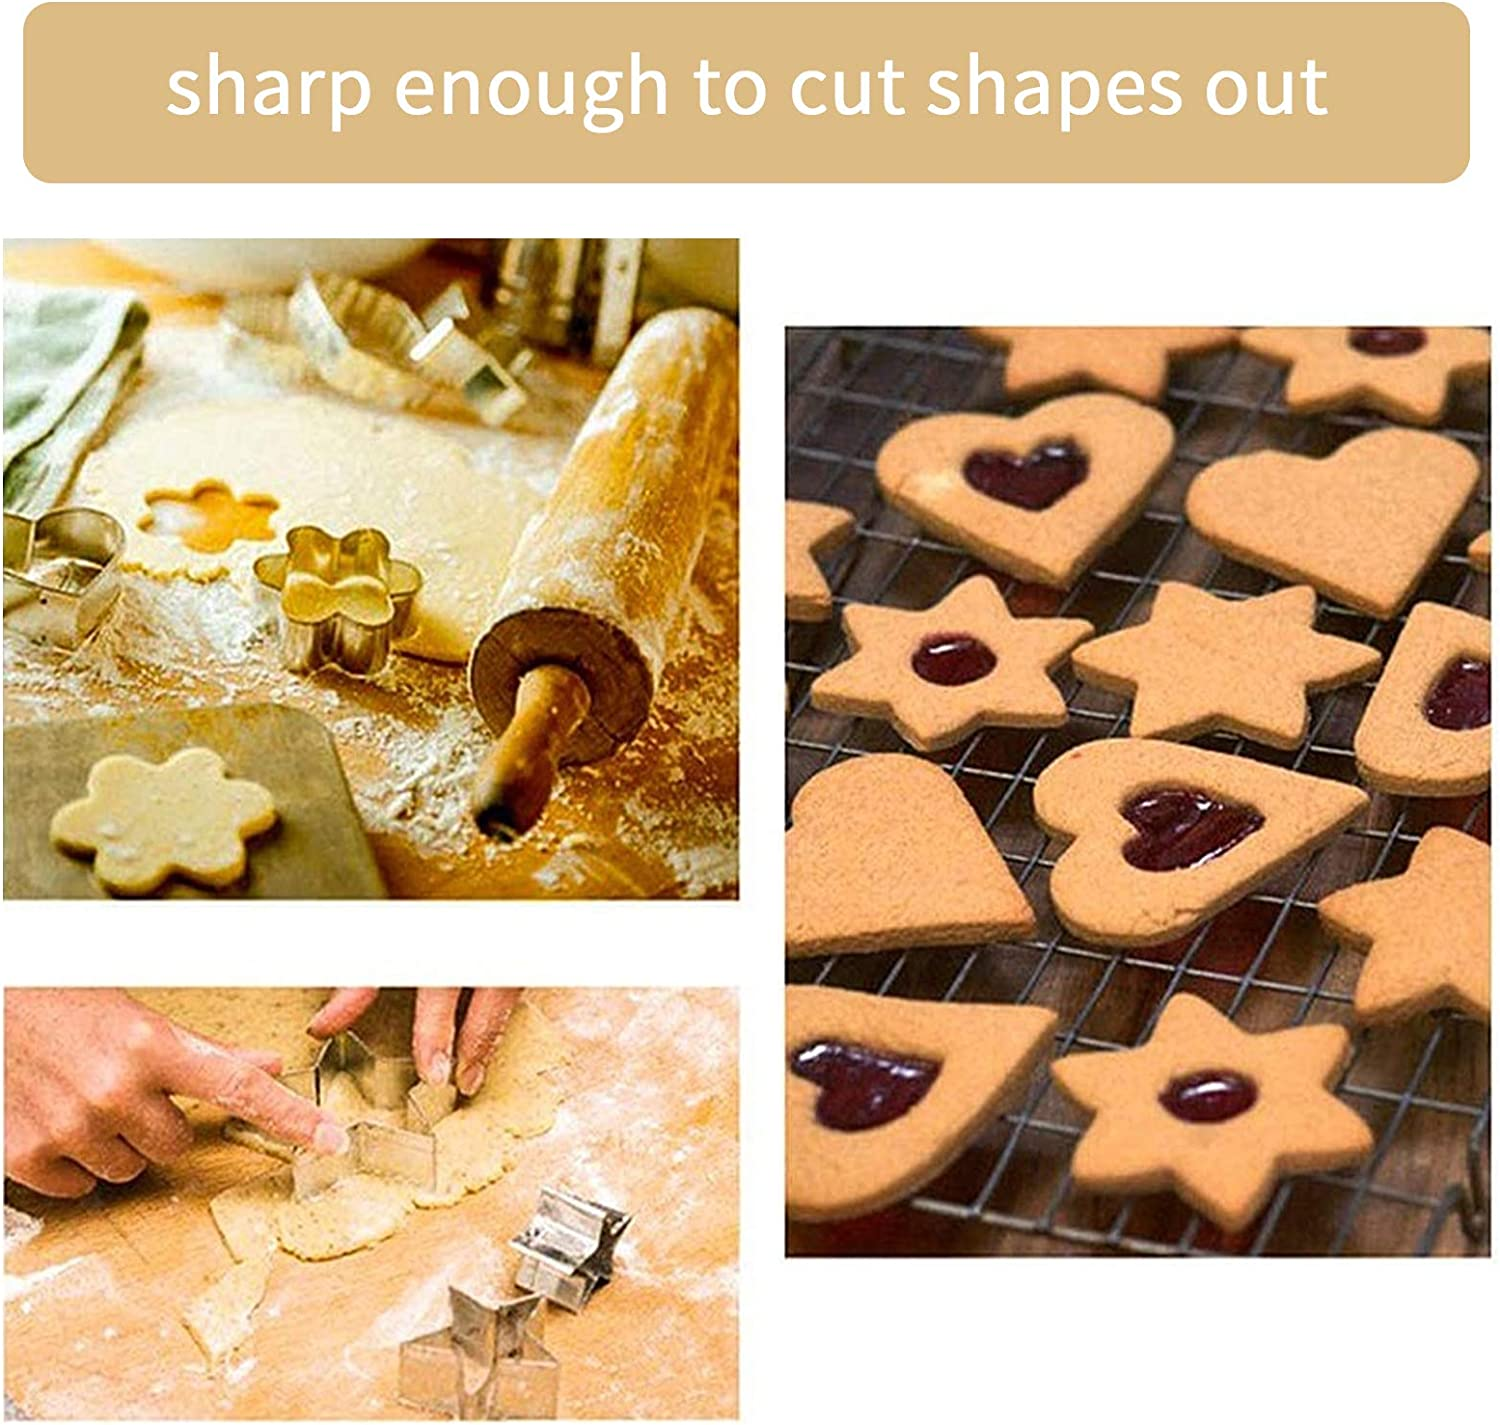 12 PCS Cookie Cutters,Stainless Steel Biscuit Cutters Set,Pastry Bakeware Decoration Heart Star Circle Flower Shaped Mould